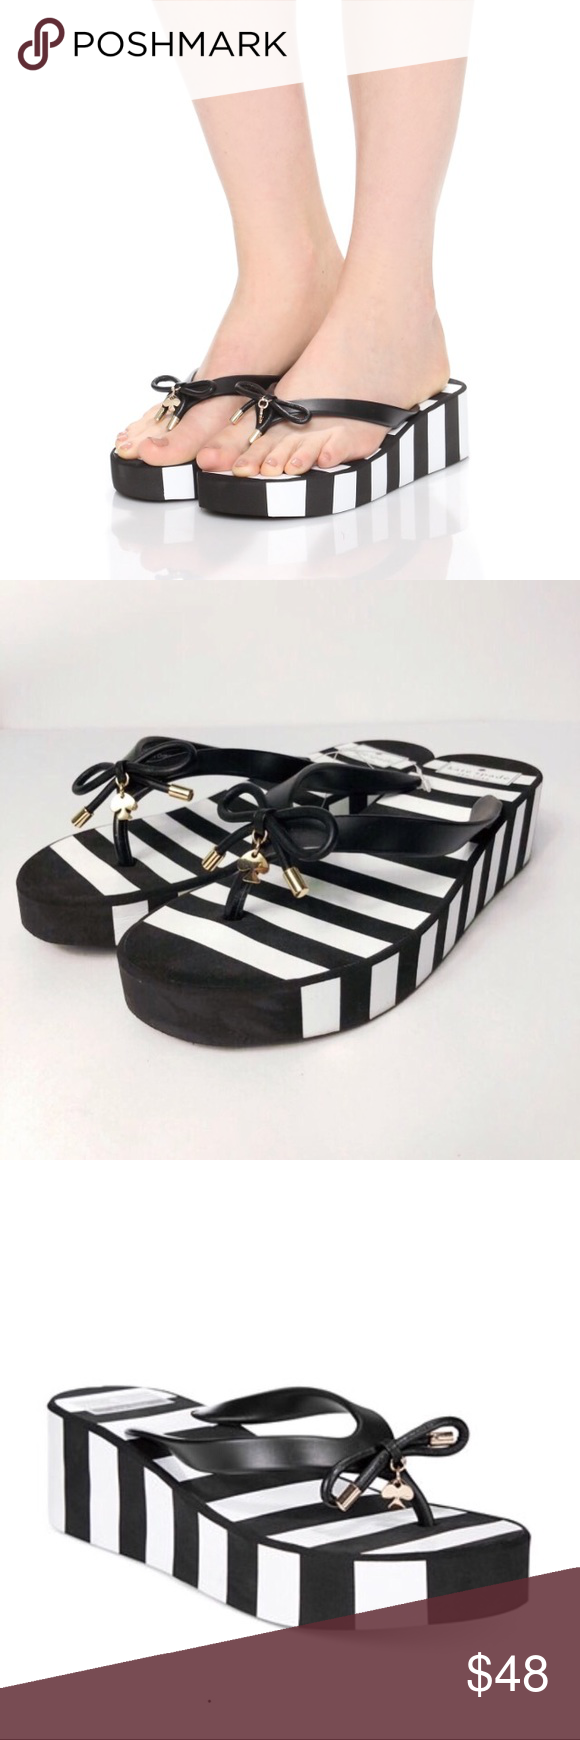 2b2db65408e8 Kate spade New York Rhett wedge sandal ♤ Brand NIB Kate spade black and white  striped wedge flip flop with signature bow and charm detail ♤ So ...